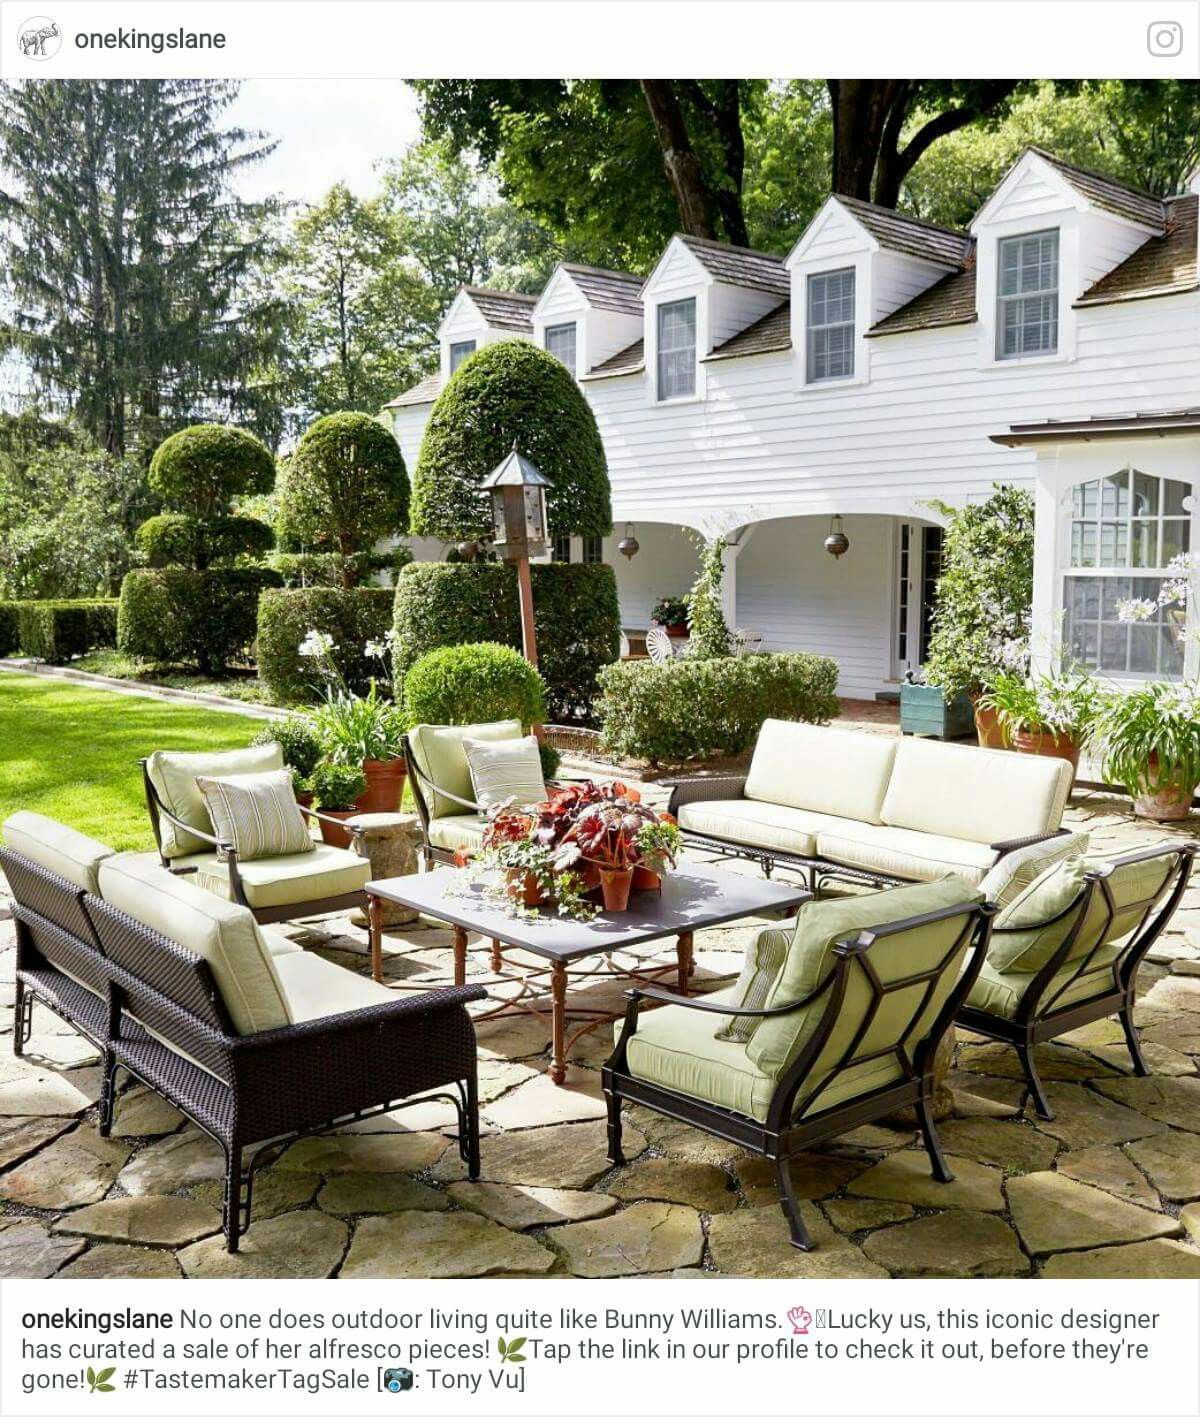 Outdoor dining outdoor seating areas outdoor decor outdoor spaces outdoor furniture